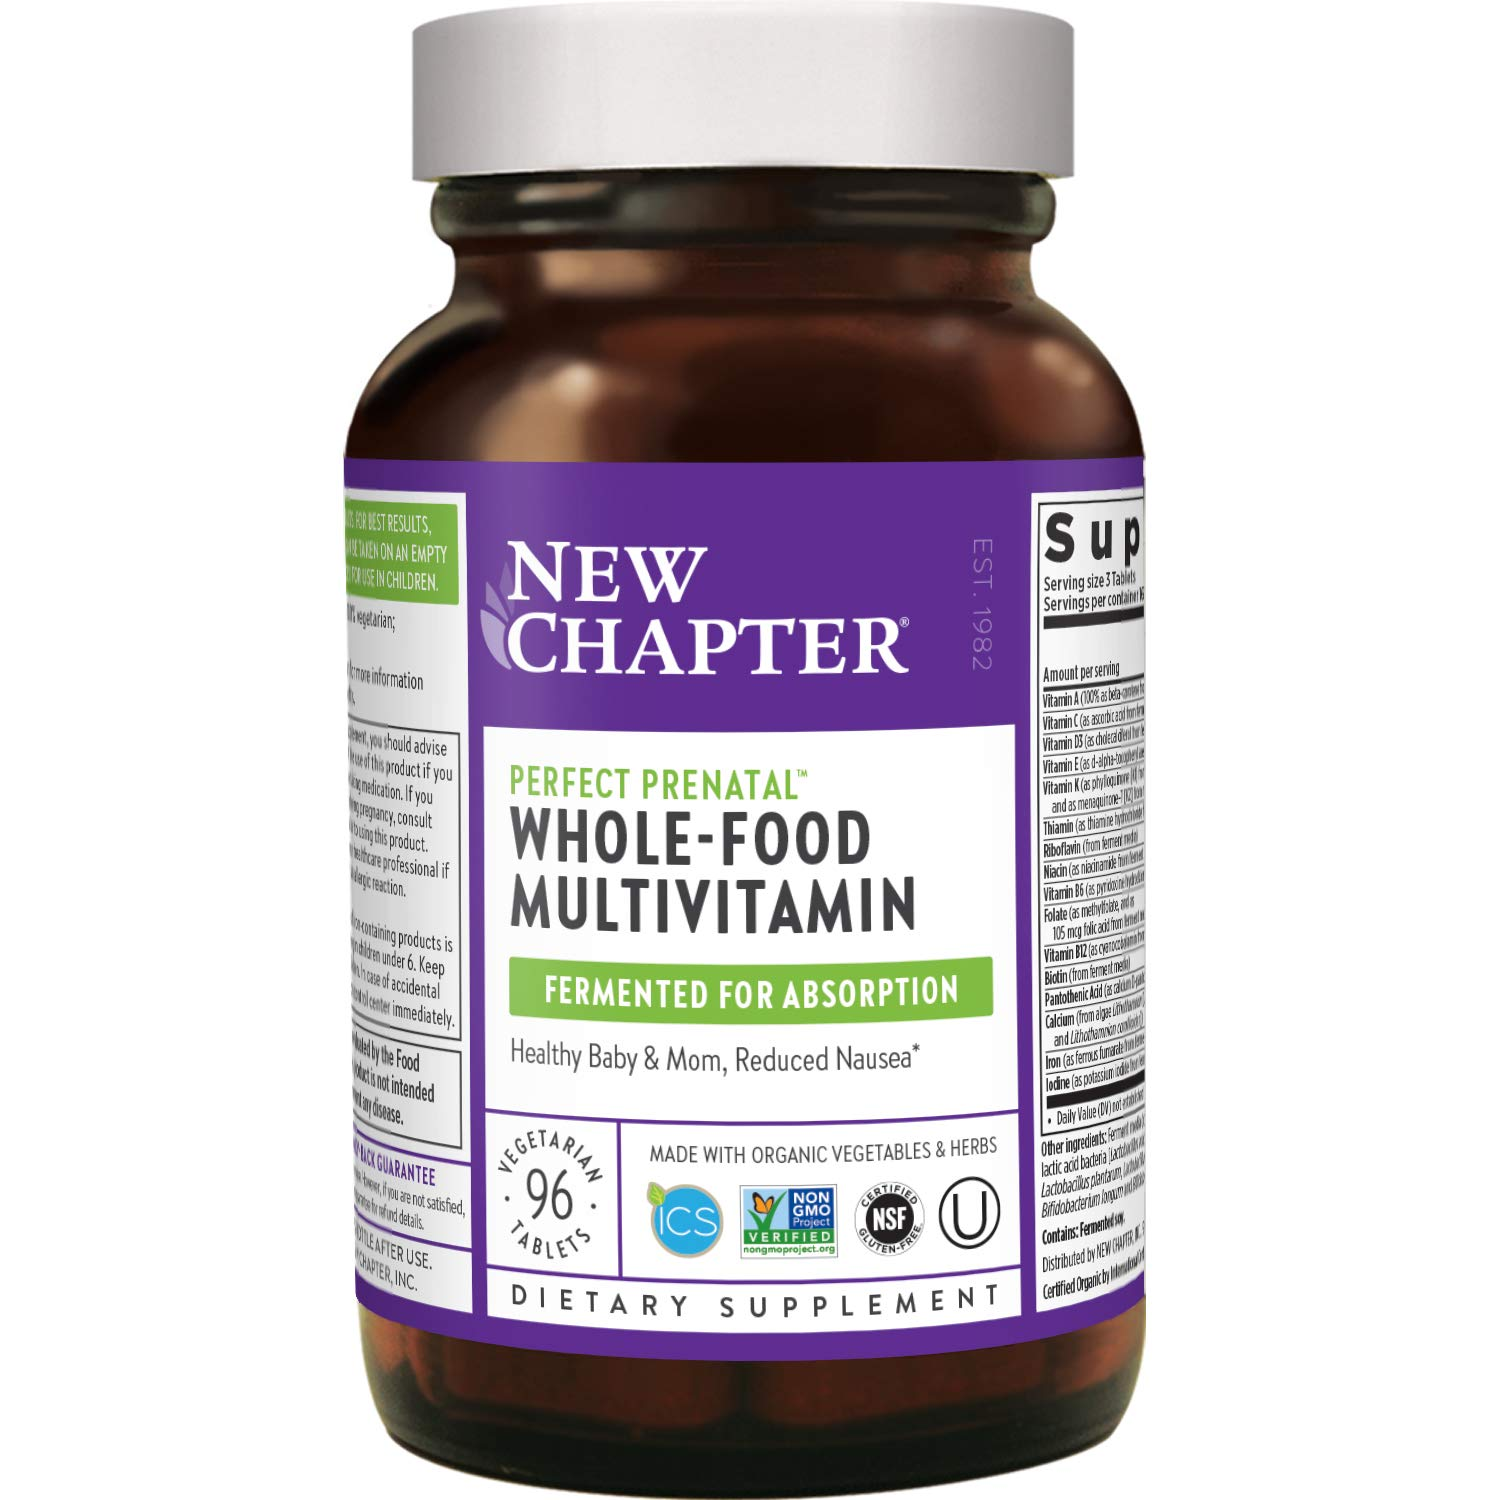 New Chapter Perfect Prenatal Vitamins - 96ct, Organic Prenatal Vitamins, Non-GMO Ingredients for Healthy Baby & Mom - Folate (Methylfolate), Iron, Vitamin D3, Fermented with Whole Foods and Probiotics